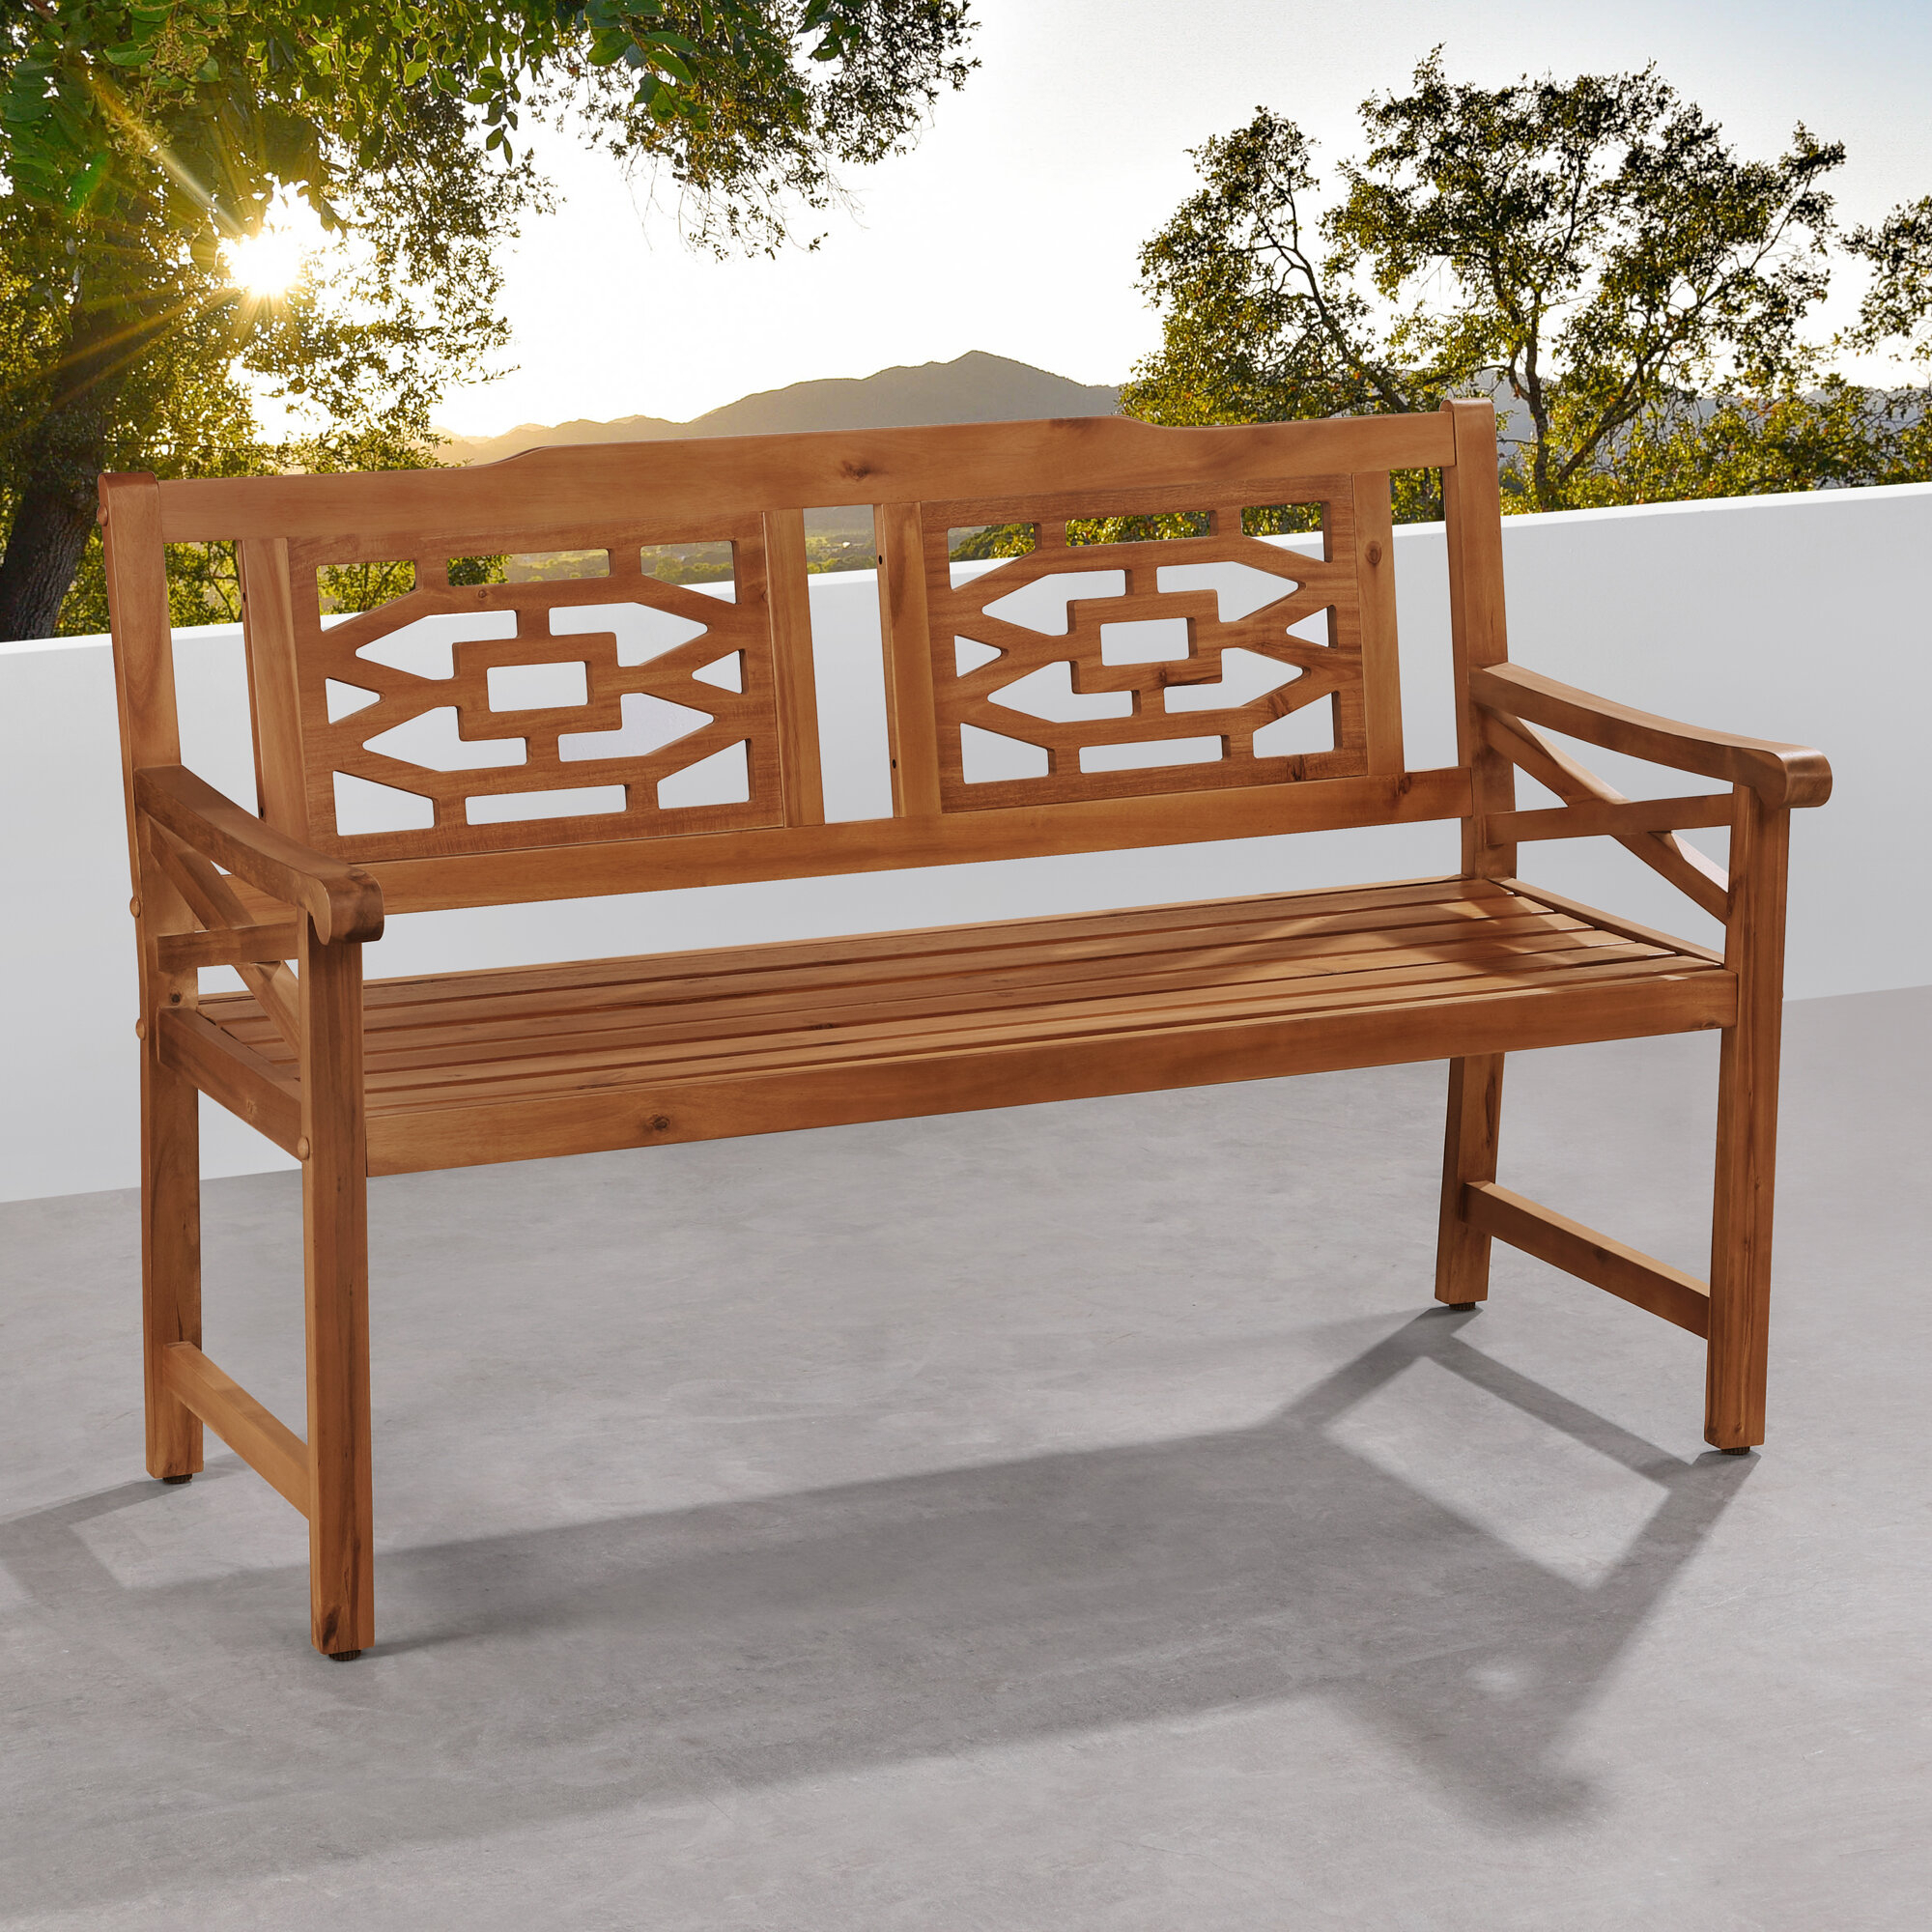 Malay Wooden Garden Bench Throughout Ahana Wooden Garden Benches (View 4 of 25)